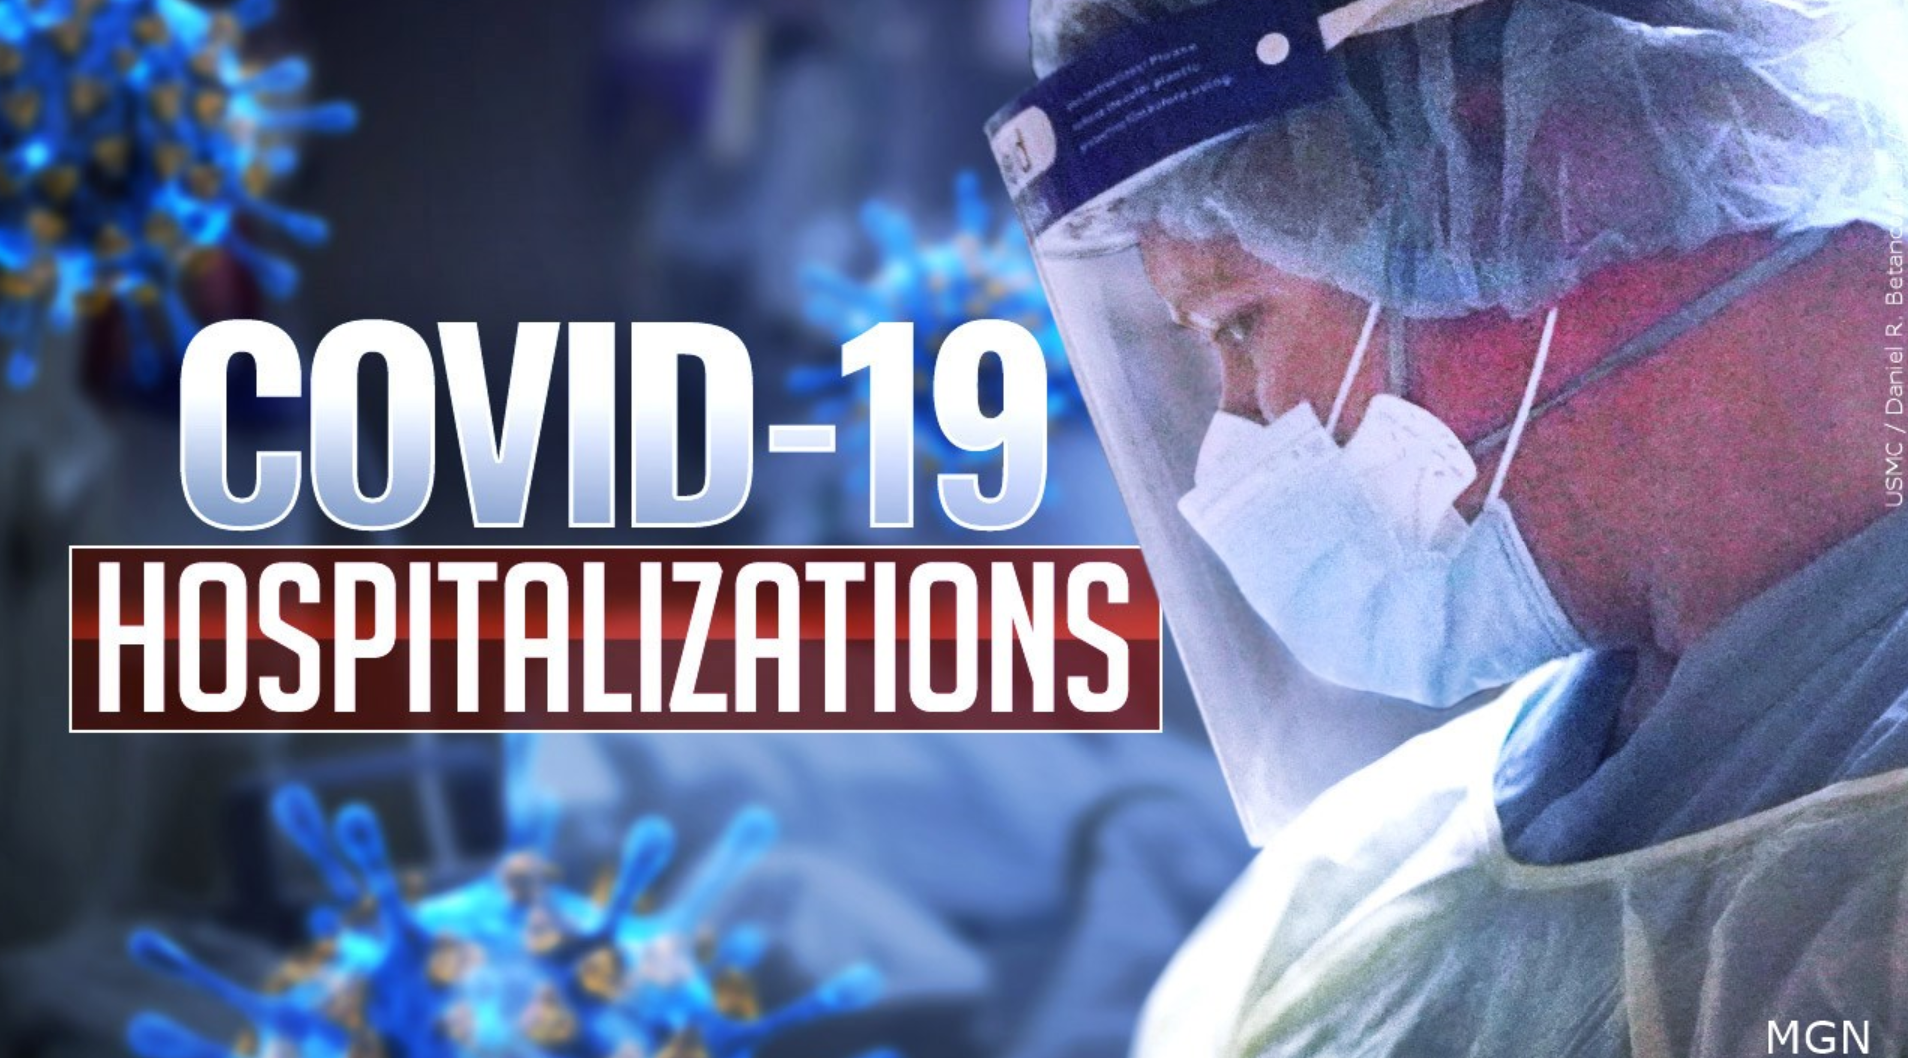 282 children hospitalized with Covid in Texas; 2 in El Paso area 6